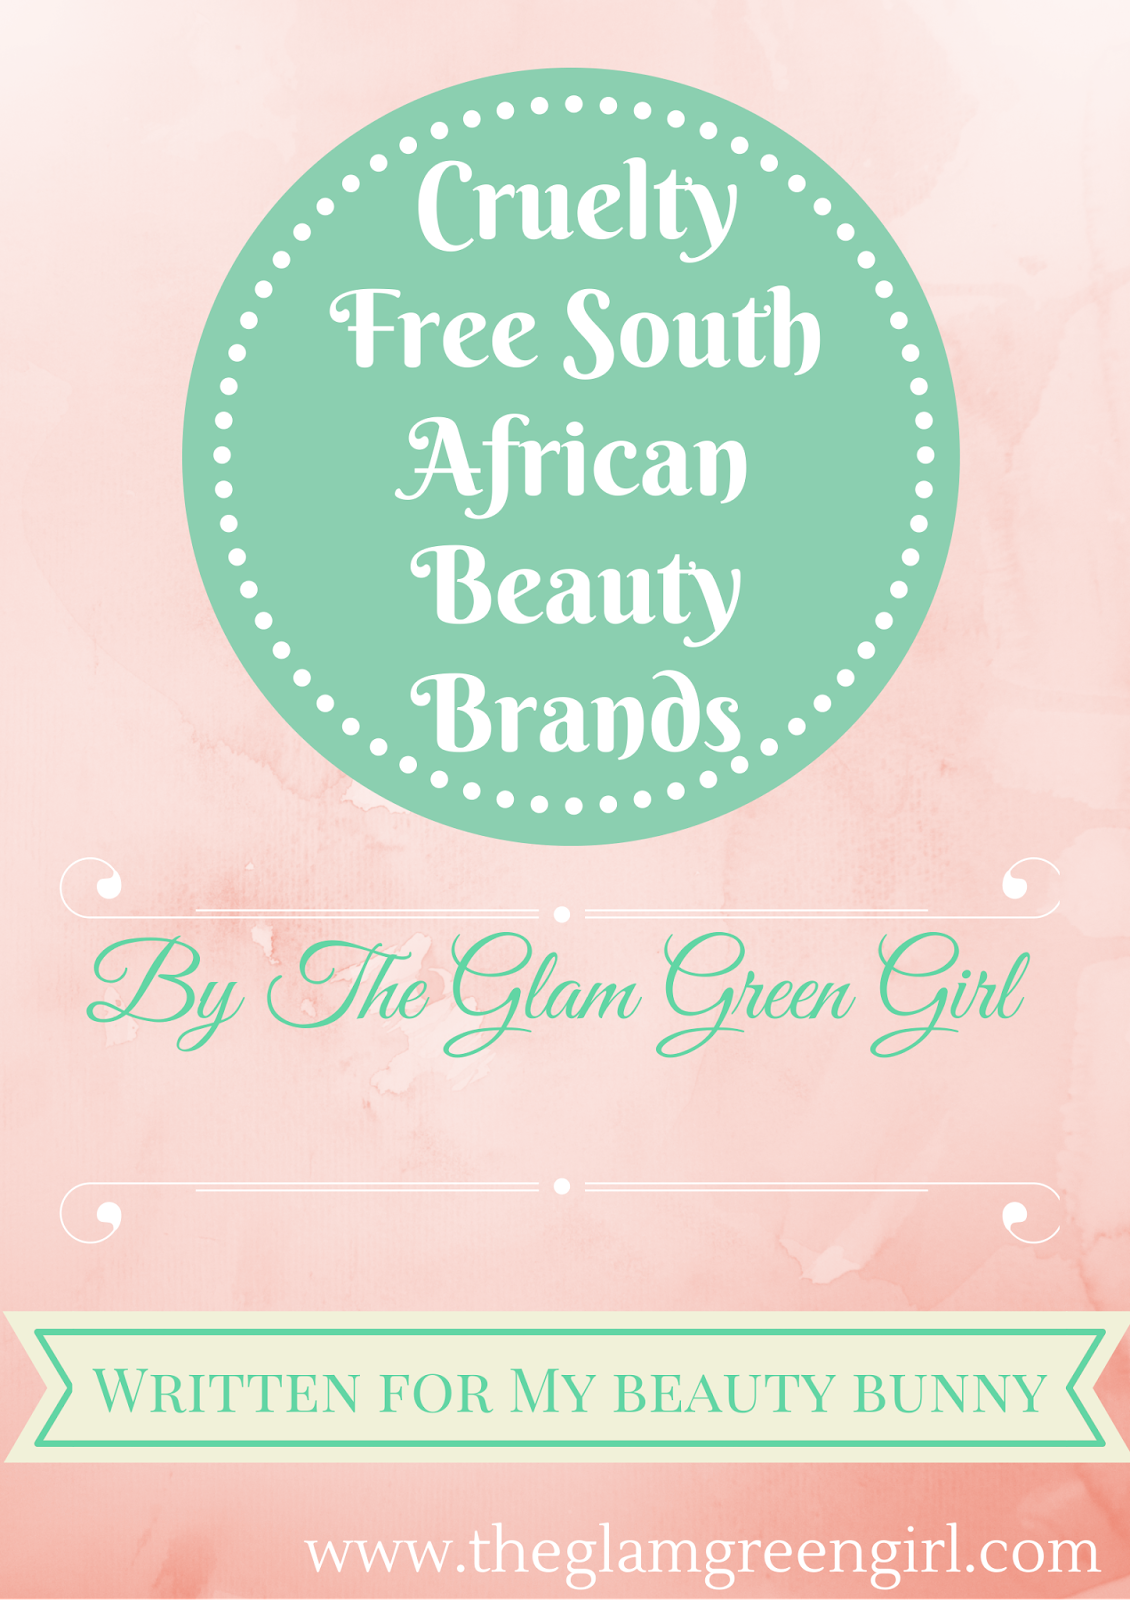 The Glam Green Girl Cruelty Free South African Beauty